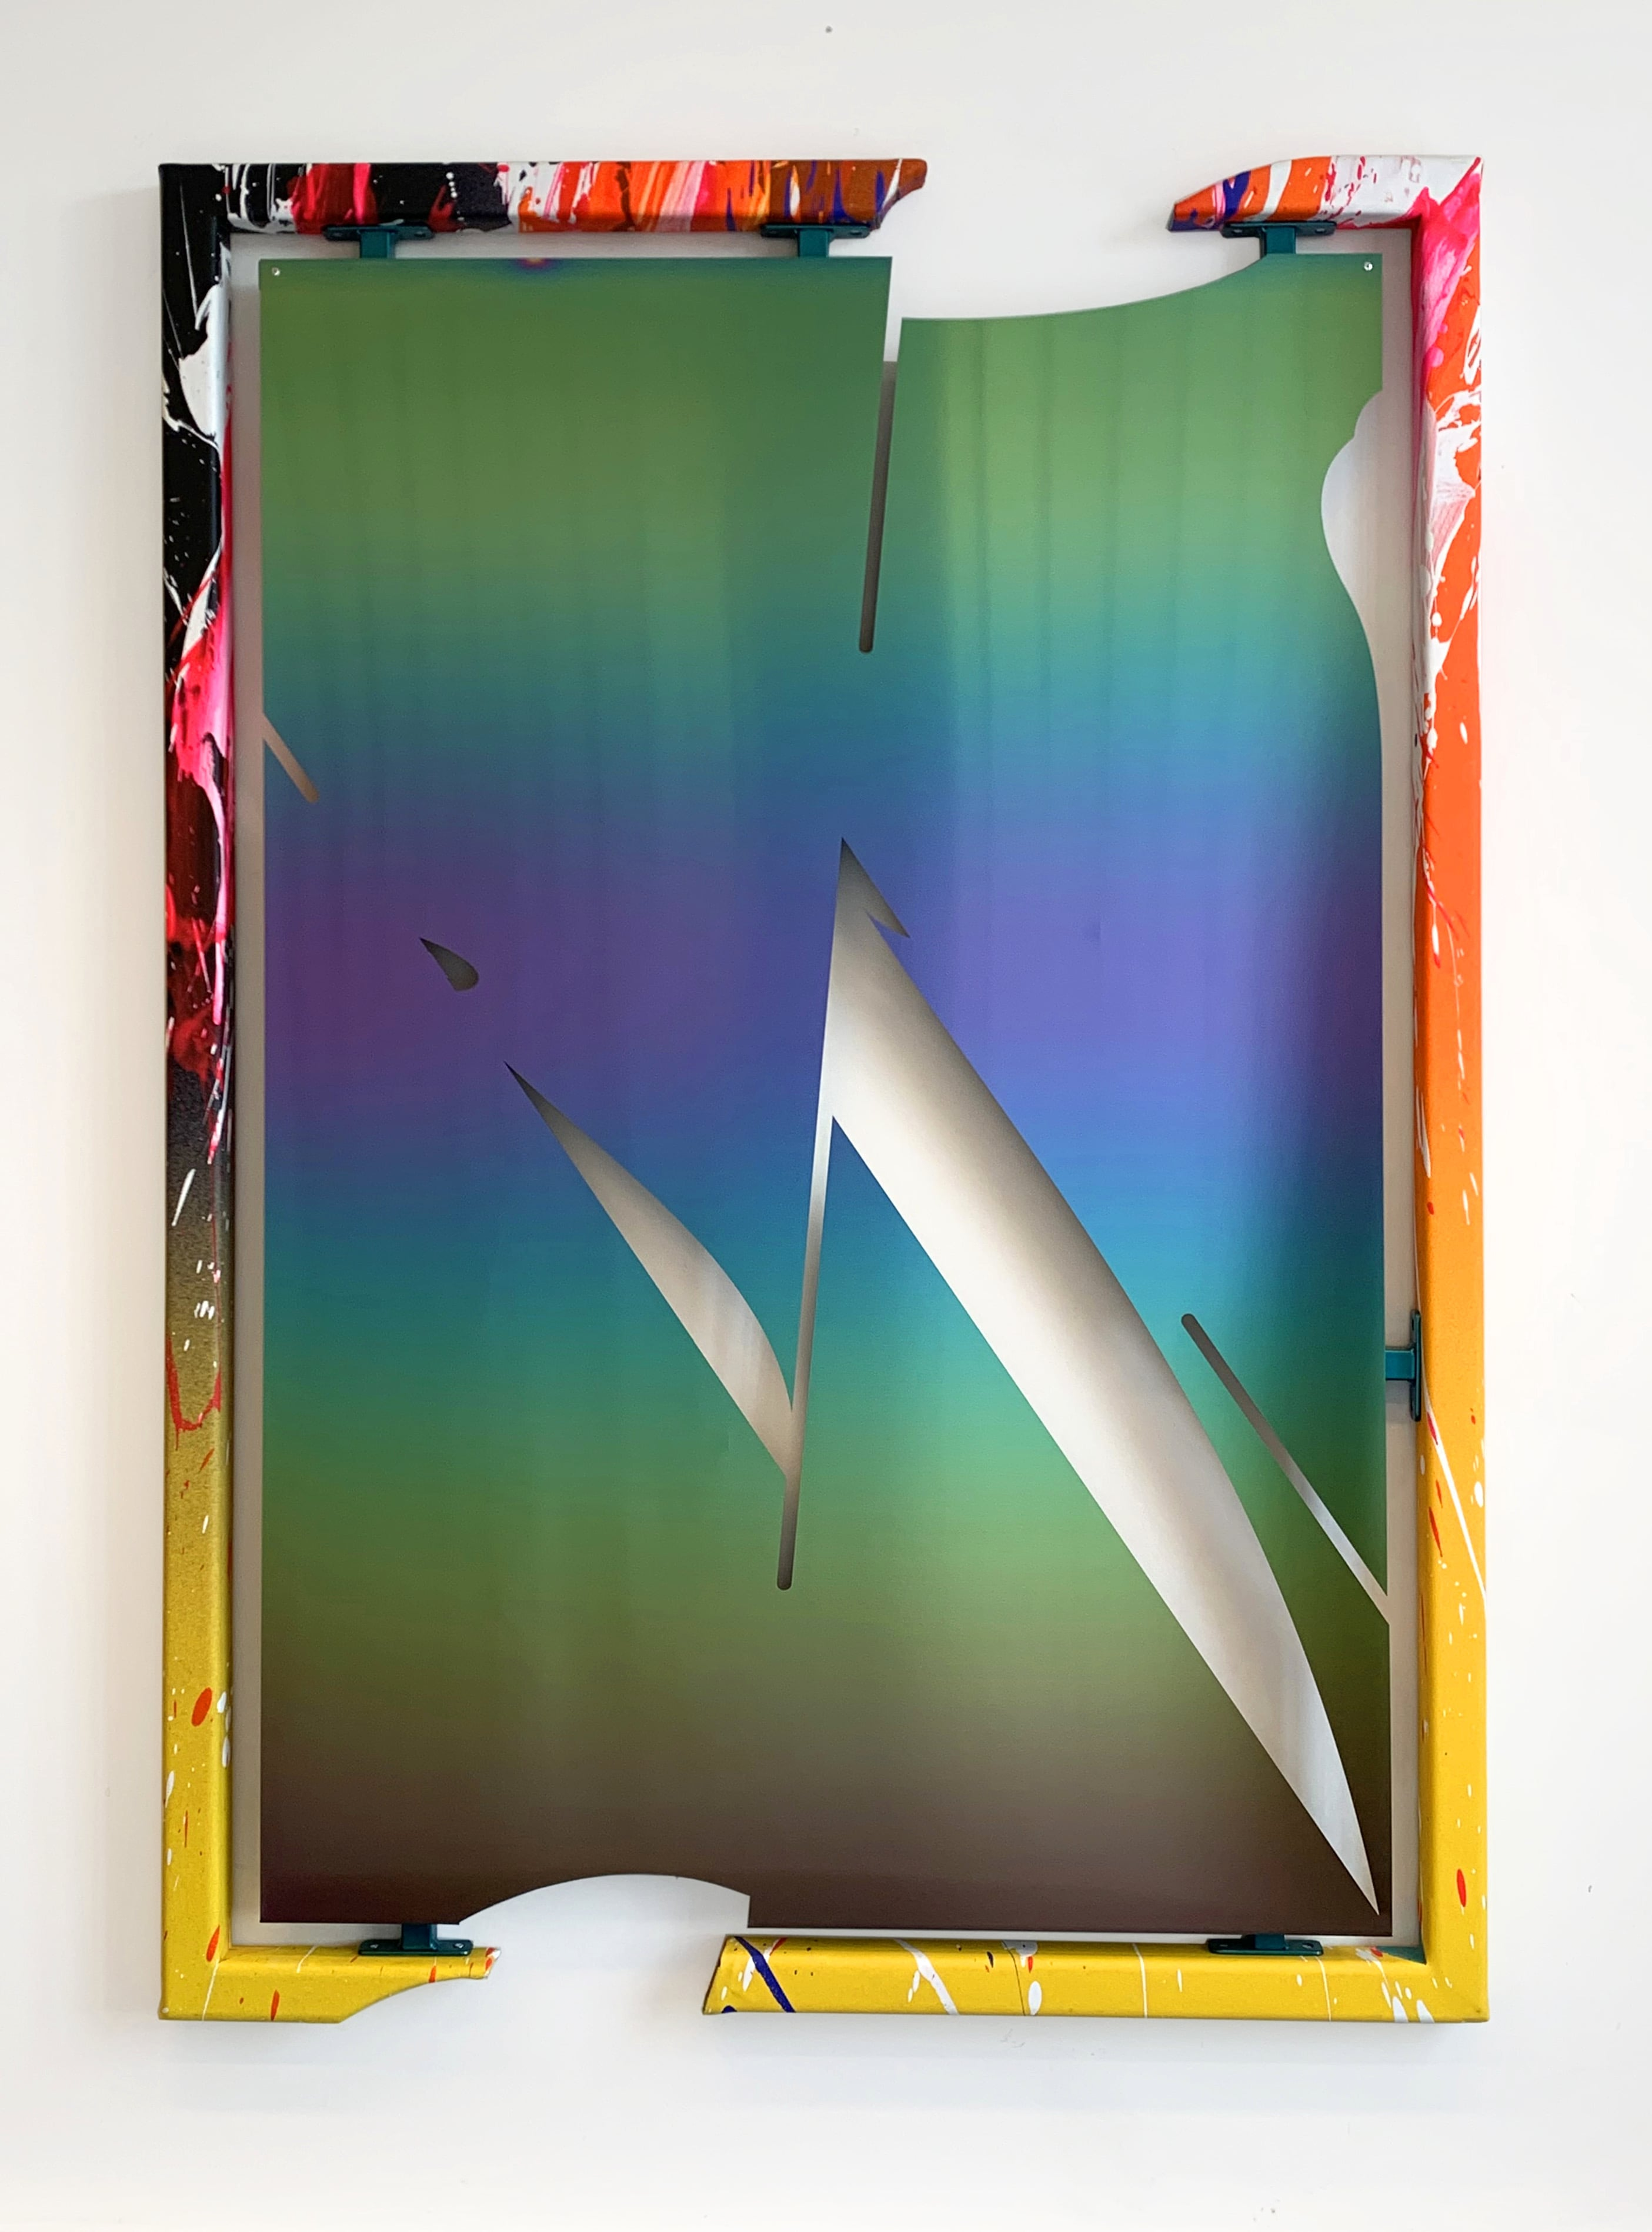 NemesM_The-Void-Paintings-05_2020_136x96cm_PVD-coated-stainless-steel-carpaint-steel-acrylic-canvas-wood-min